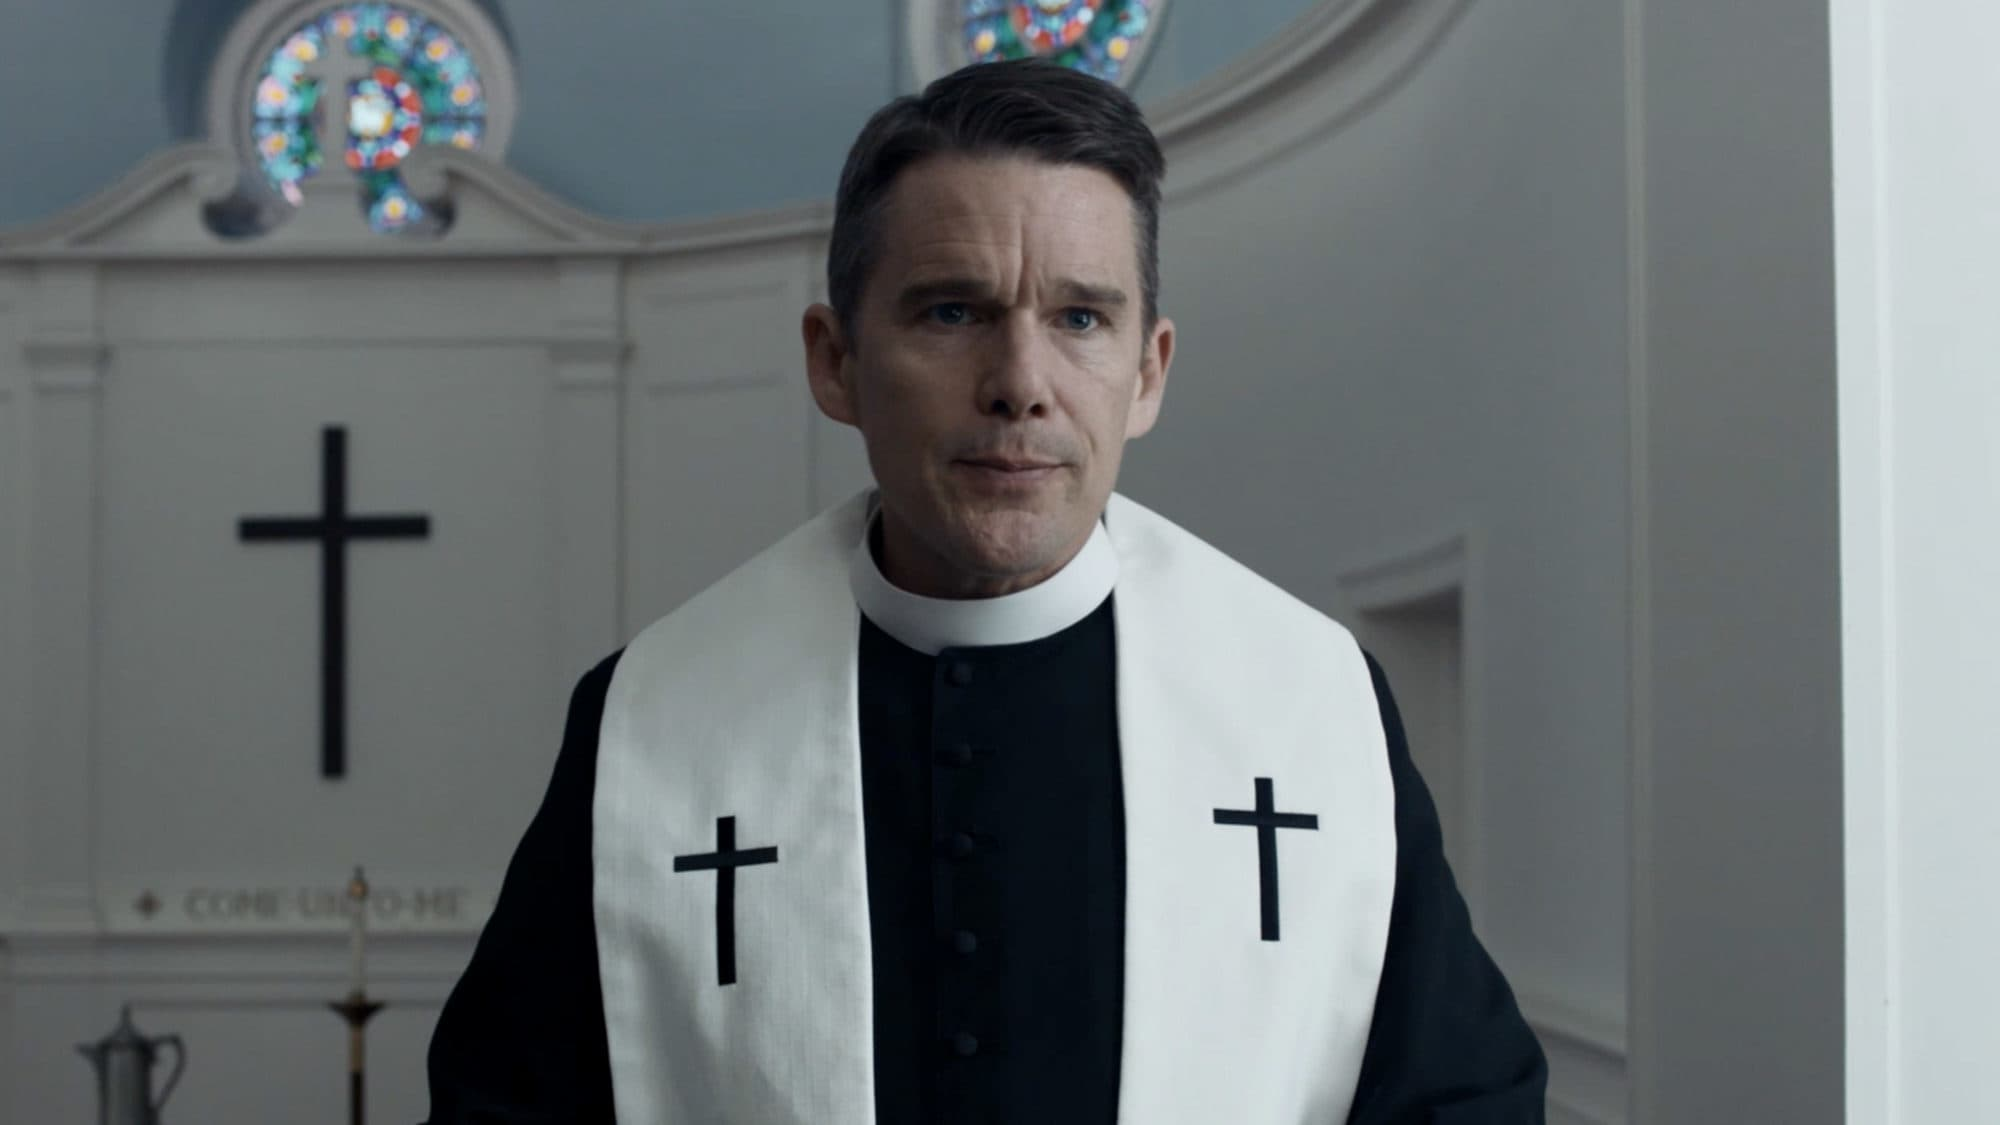 First Reformed a drama by Paul Schrader